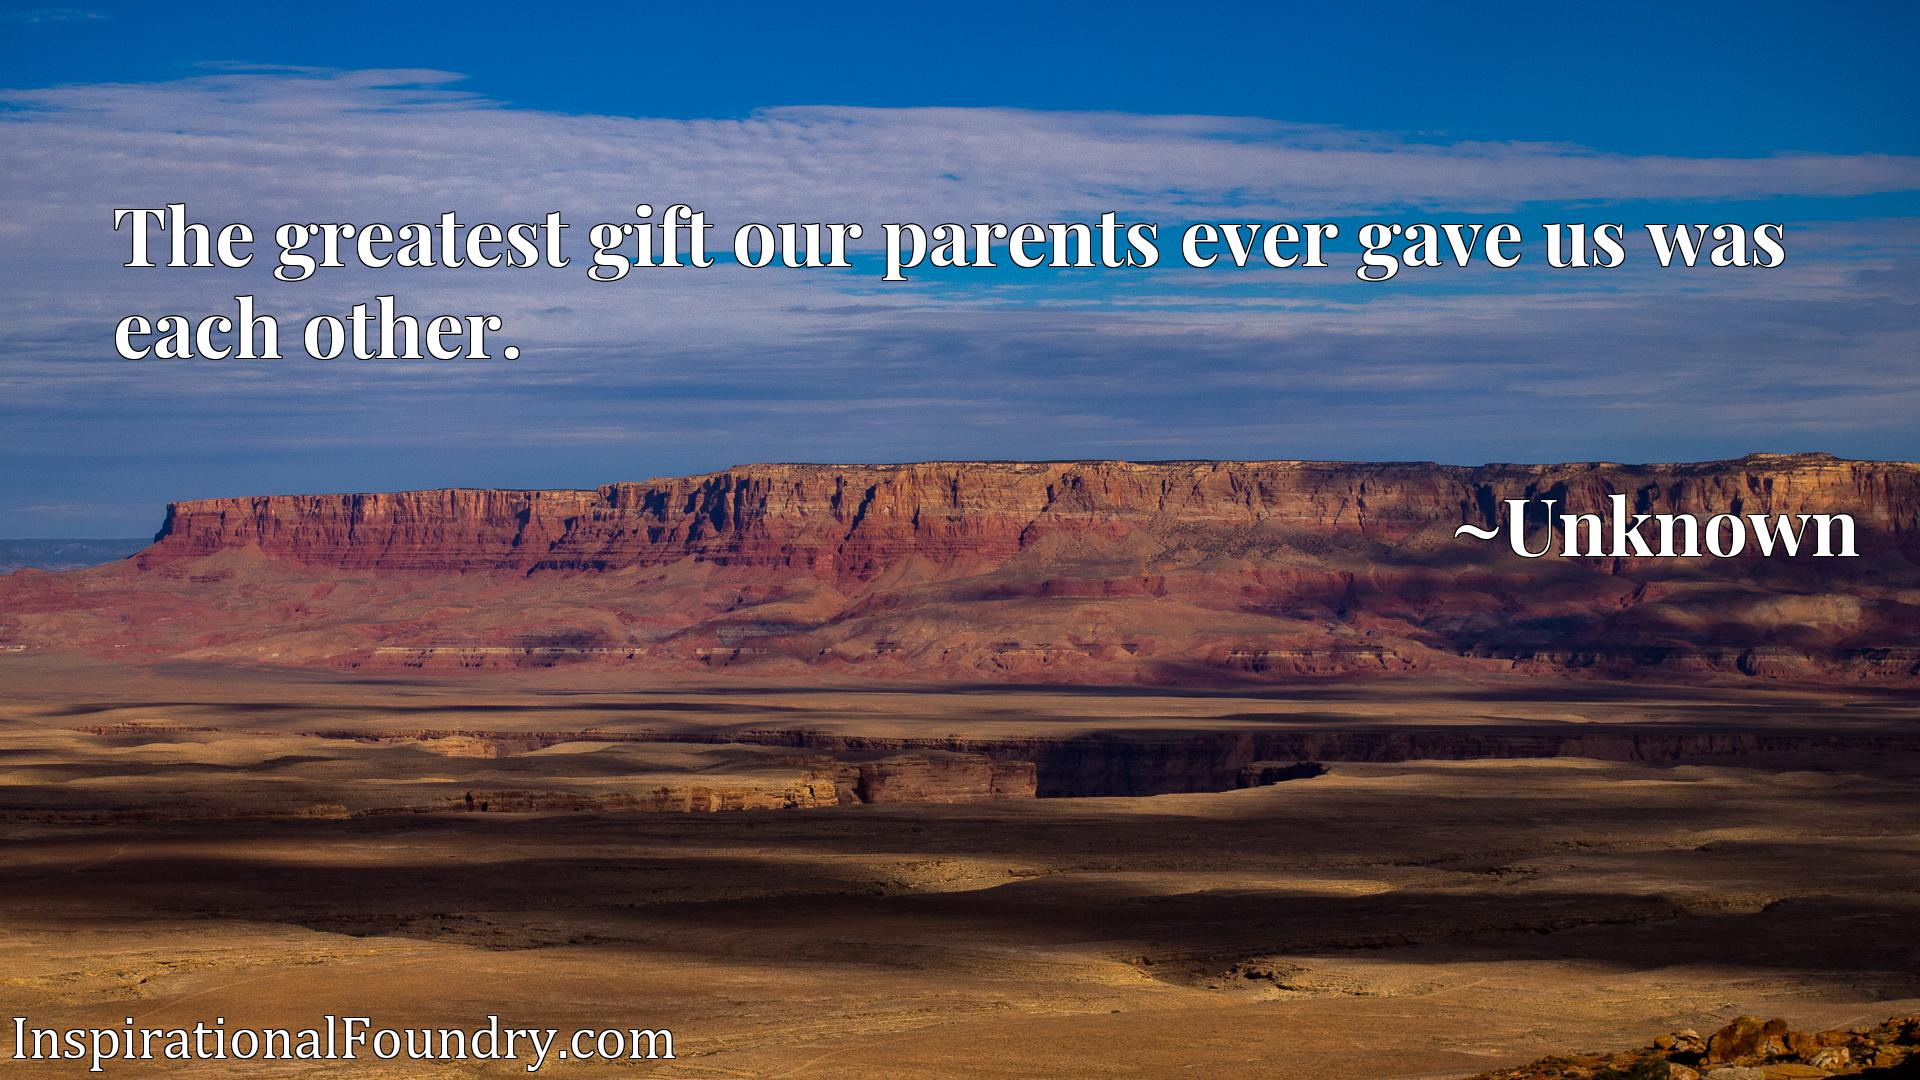 The greatest gift our parents ever gave us was each other.